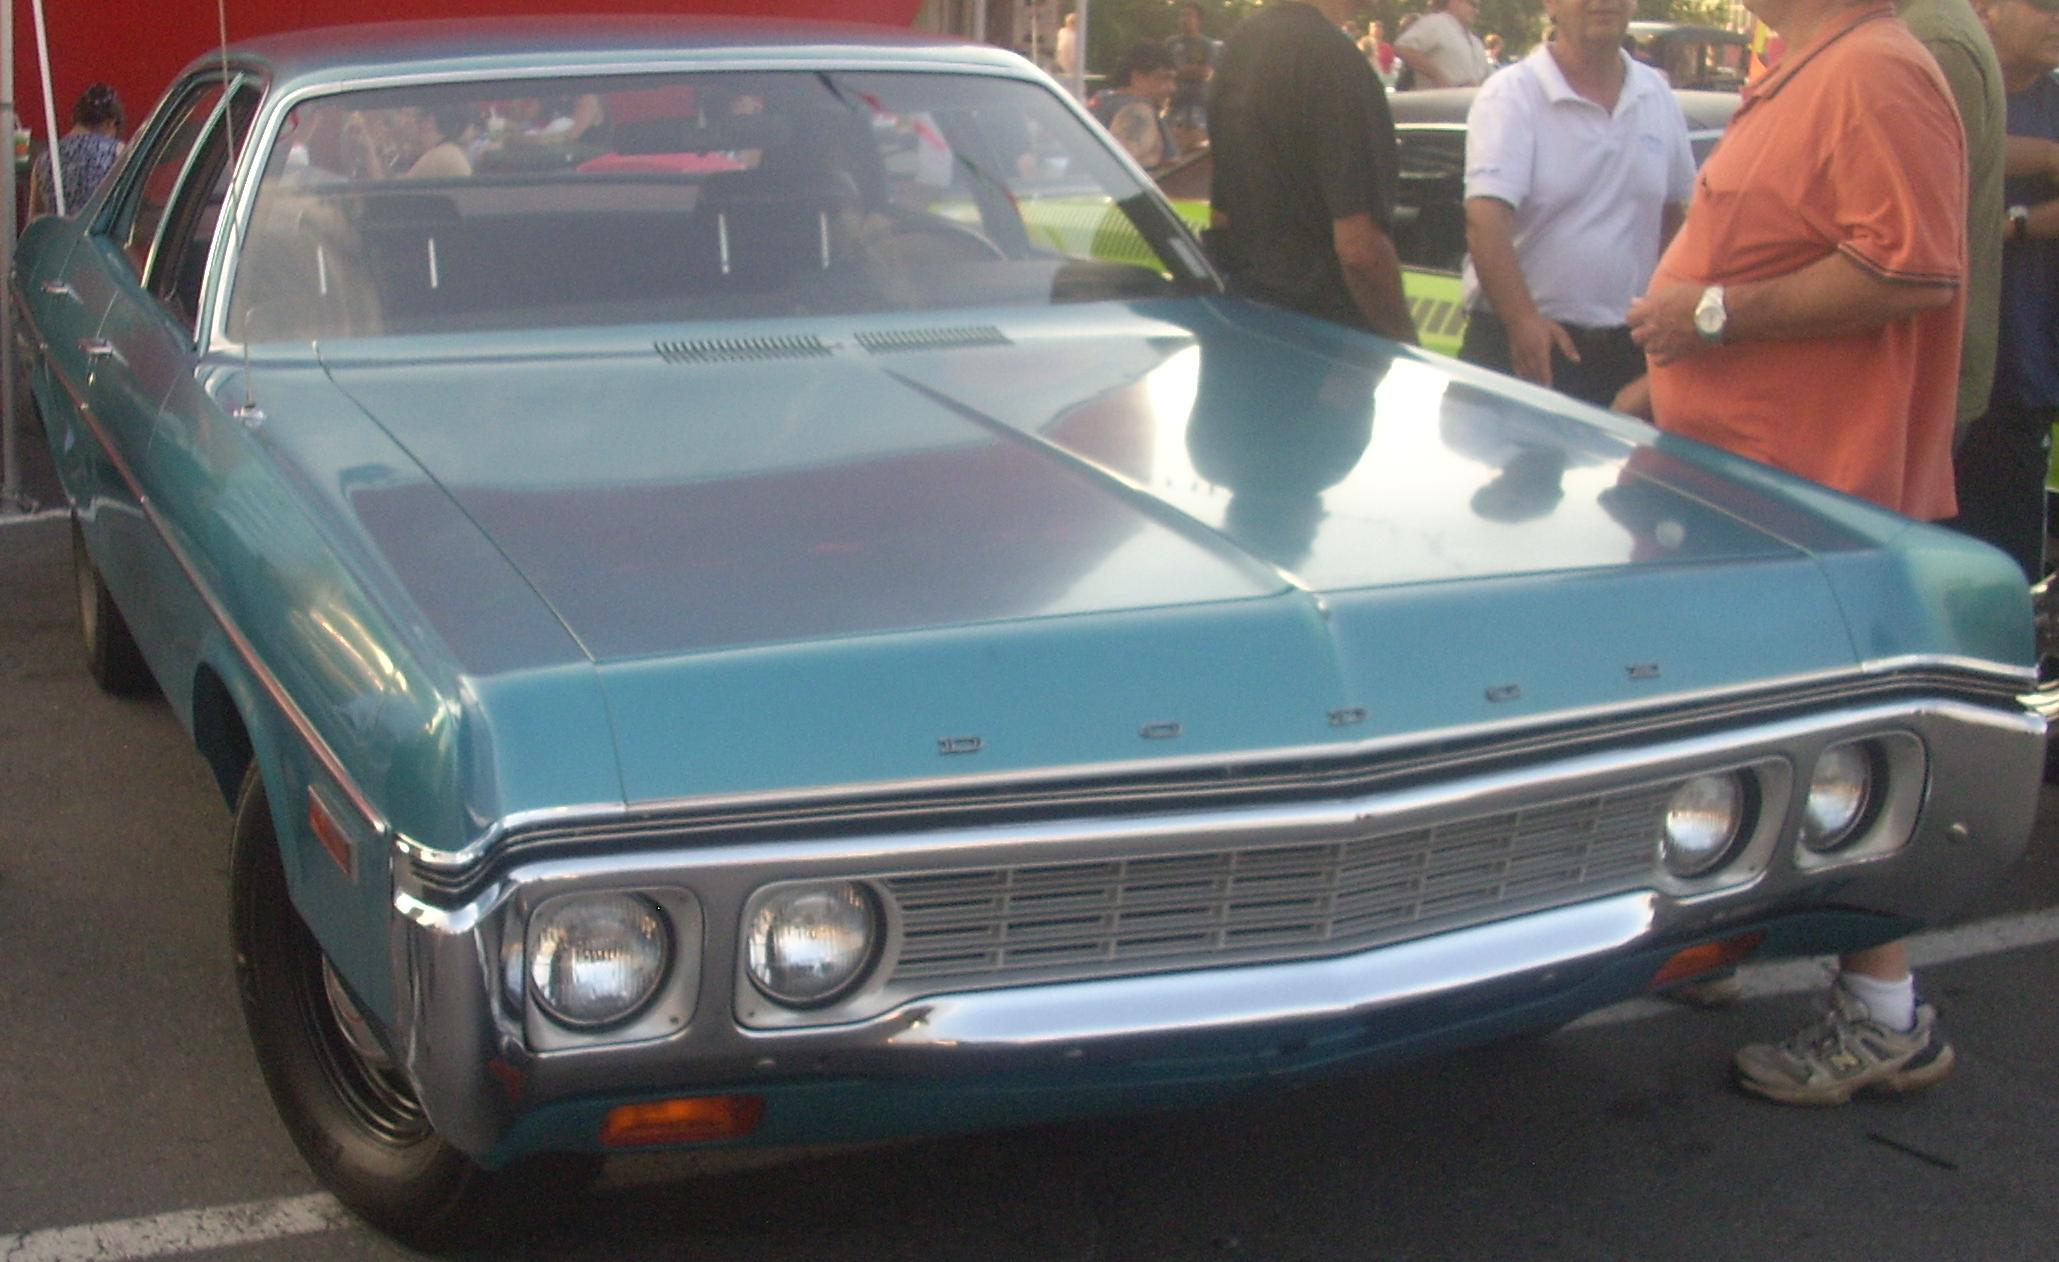 Plymouth Duster For Sale Craigslist - Best Car News 2019-2020 by